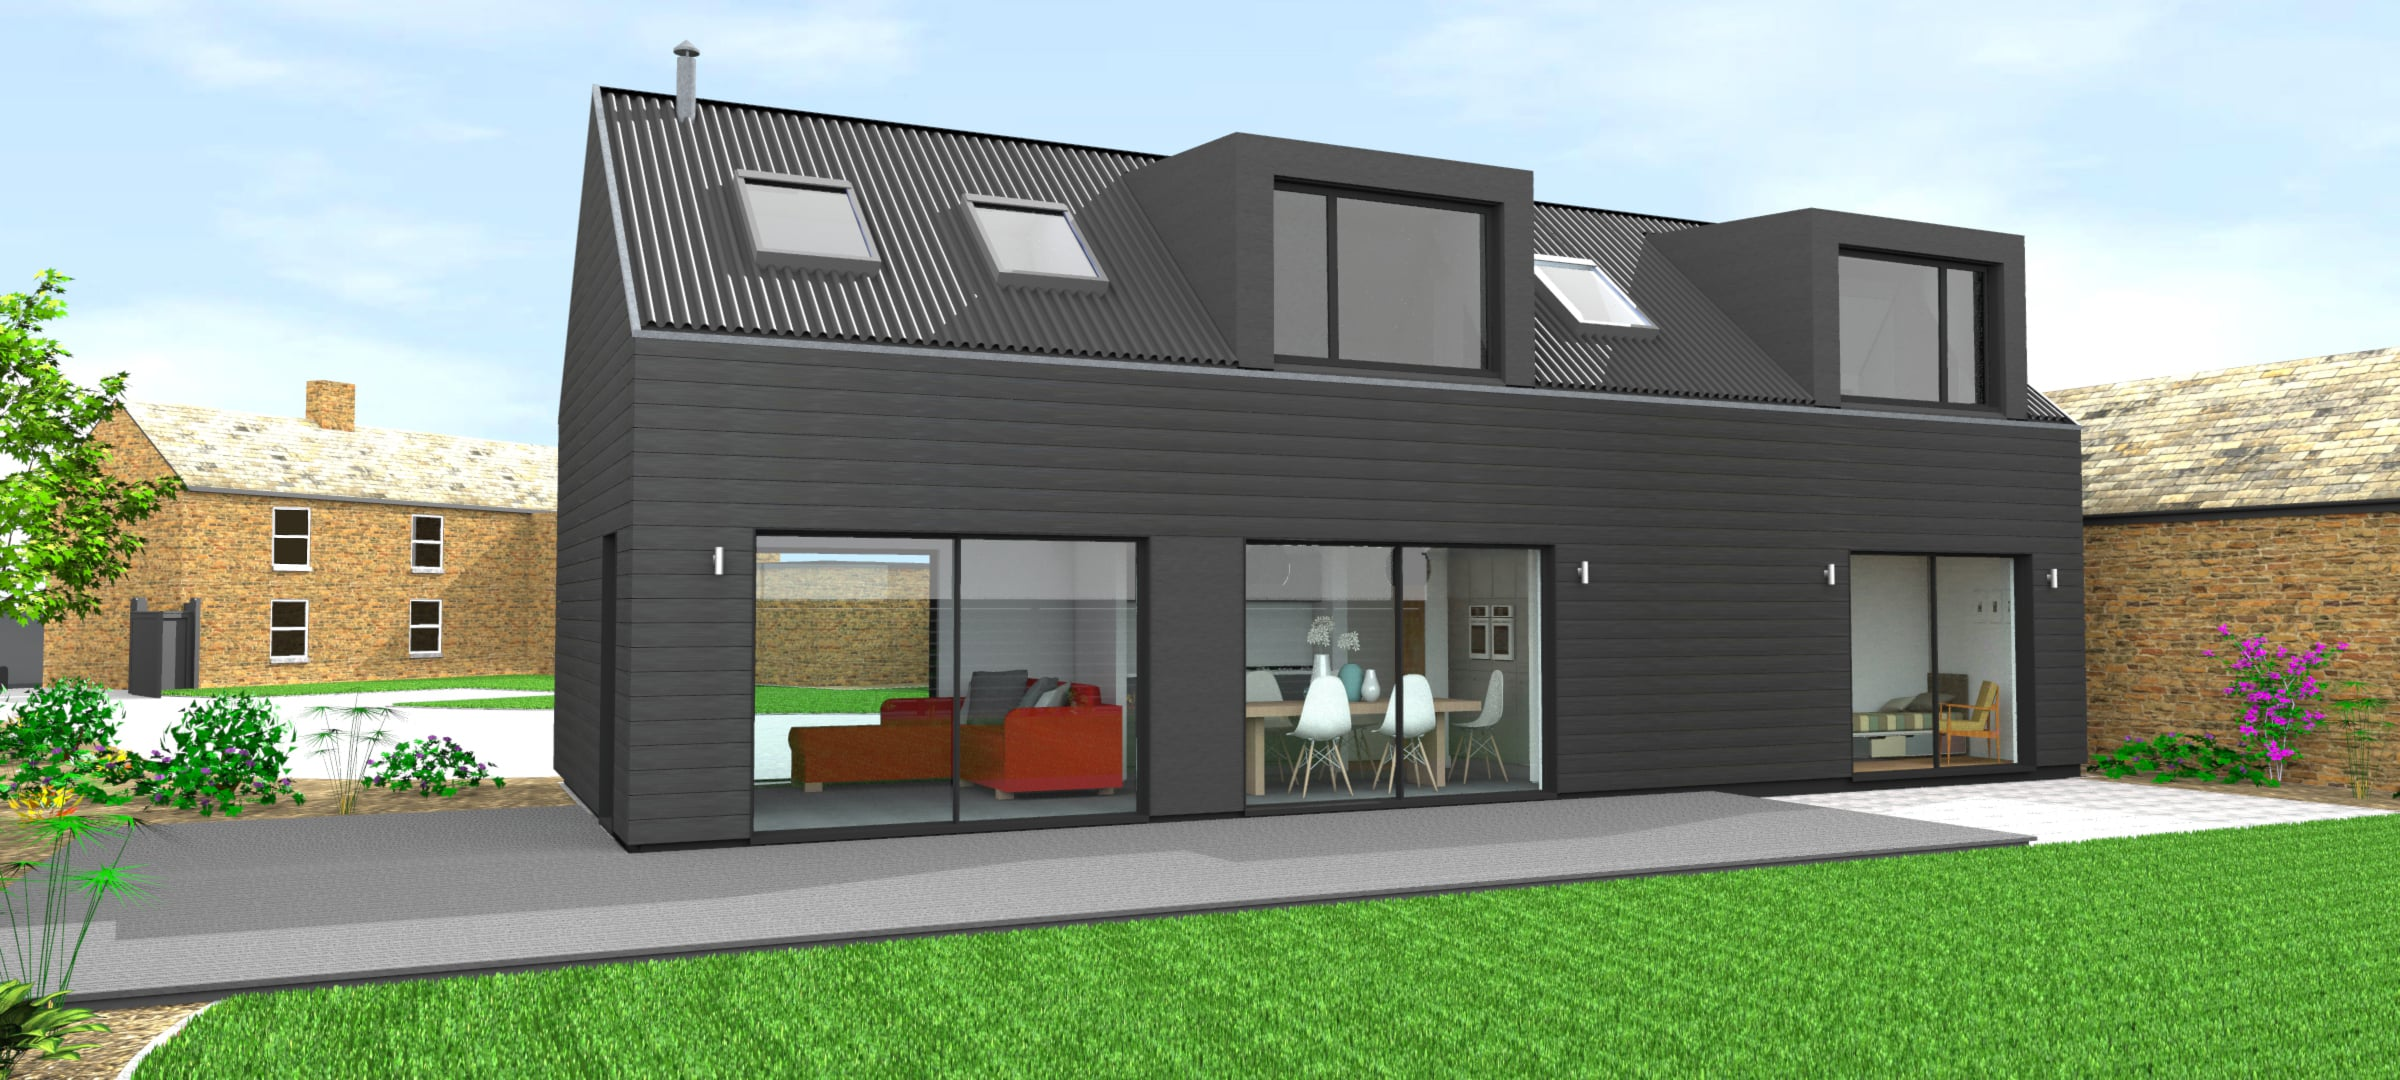 new-build-proposed-outdoor-view-into-house-harvey-norman-architects-cambridge.jpg